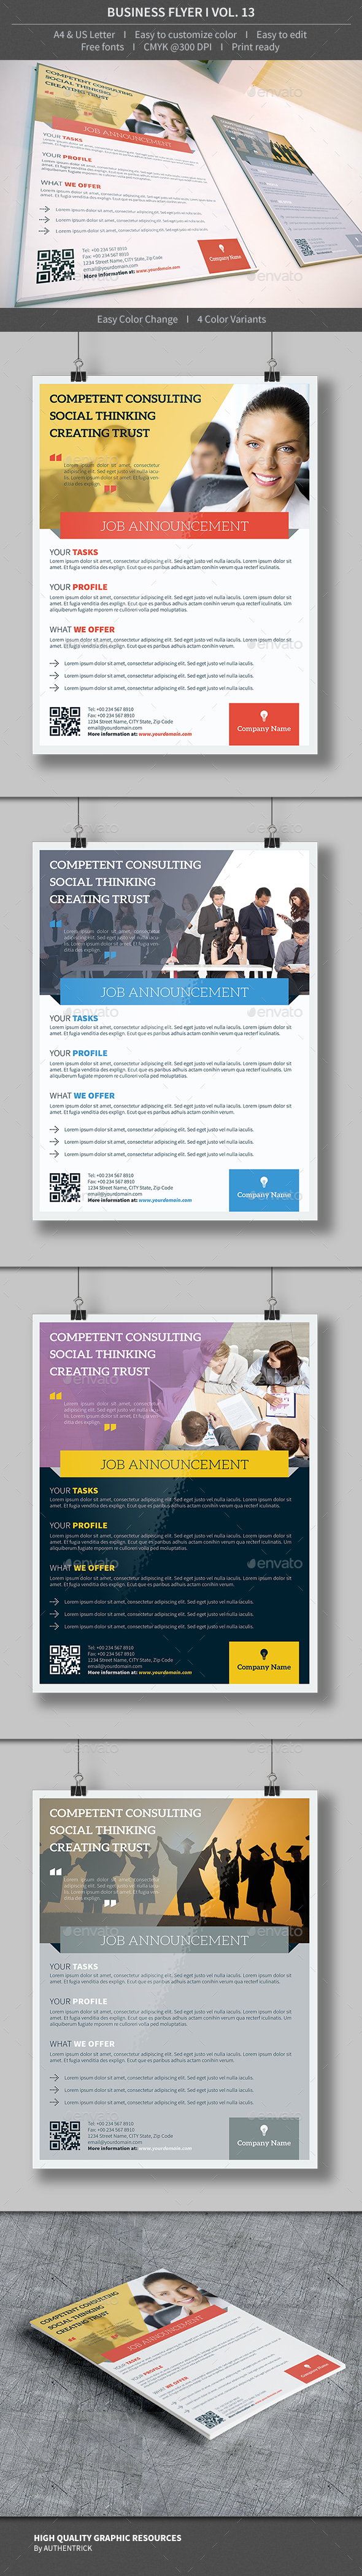 Business Flyer - Volume 13 - Corporate Flyers